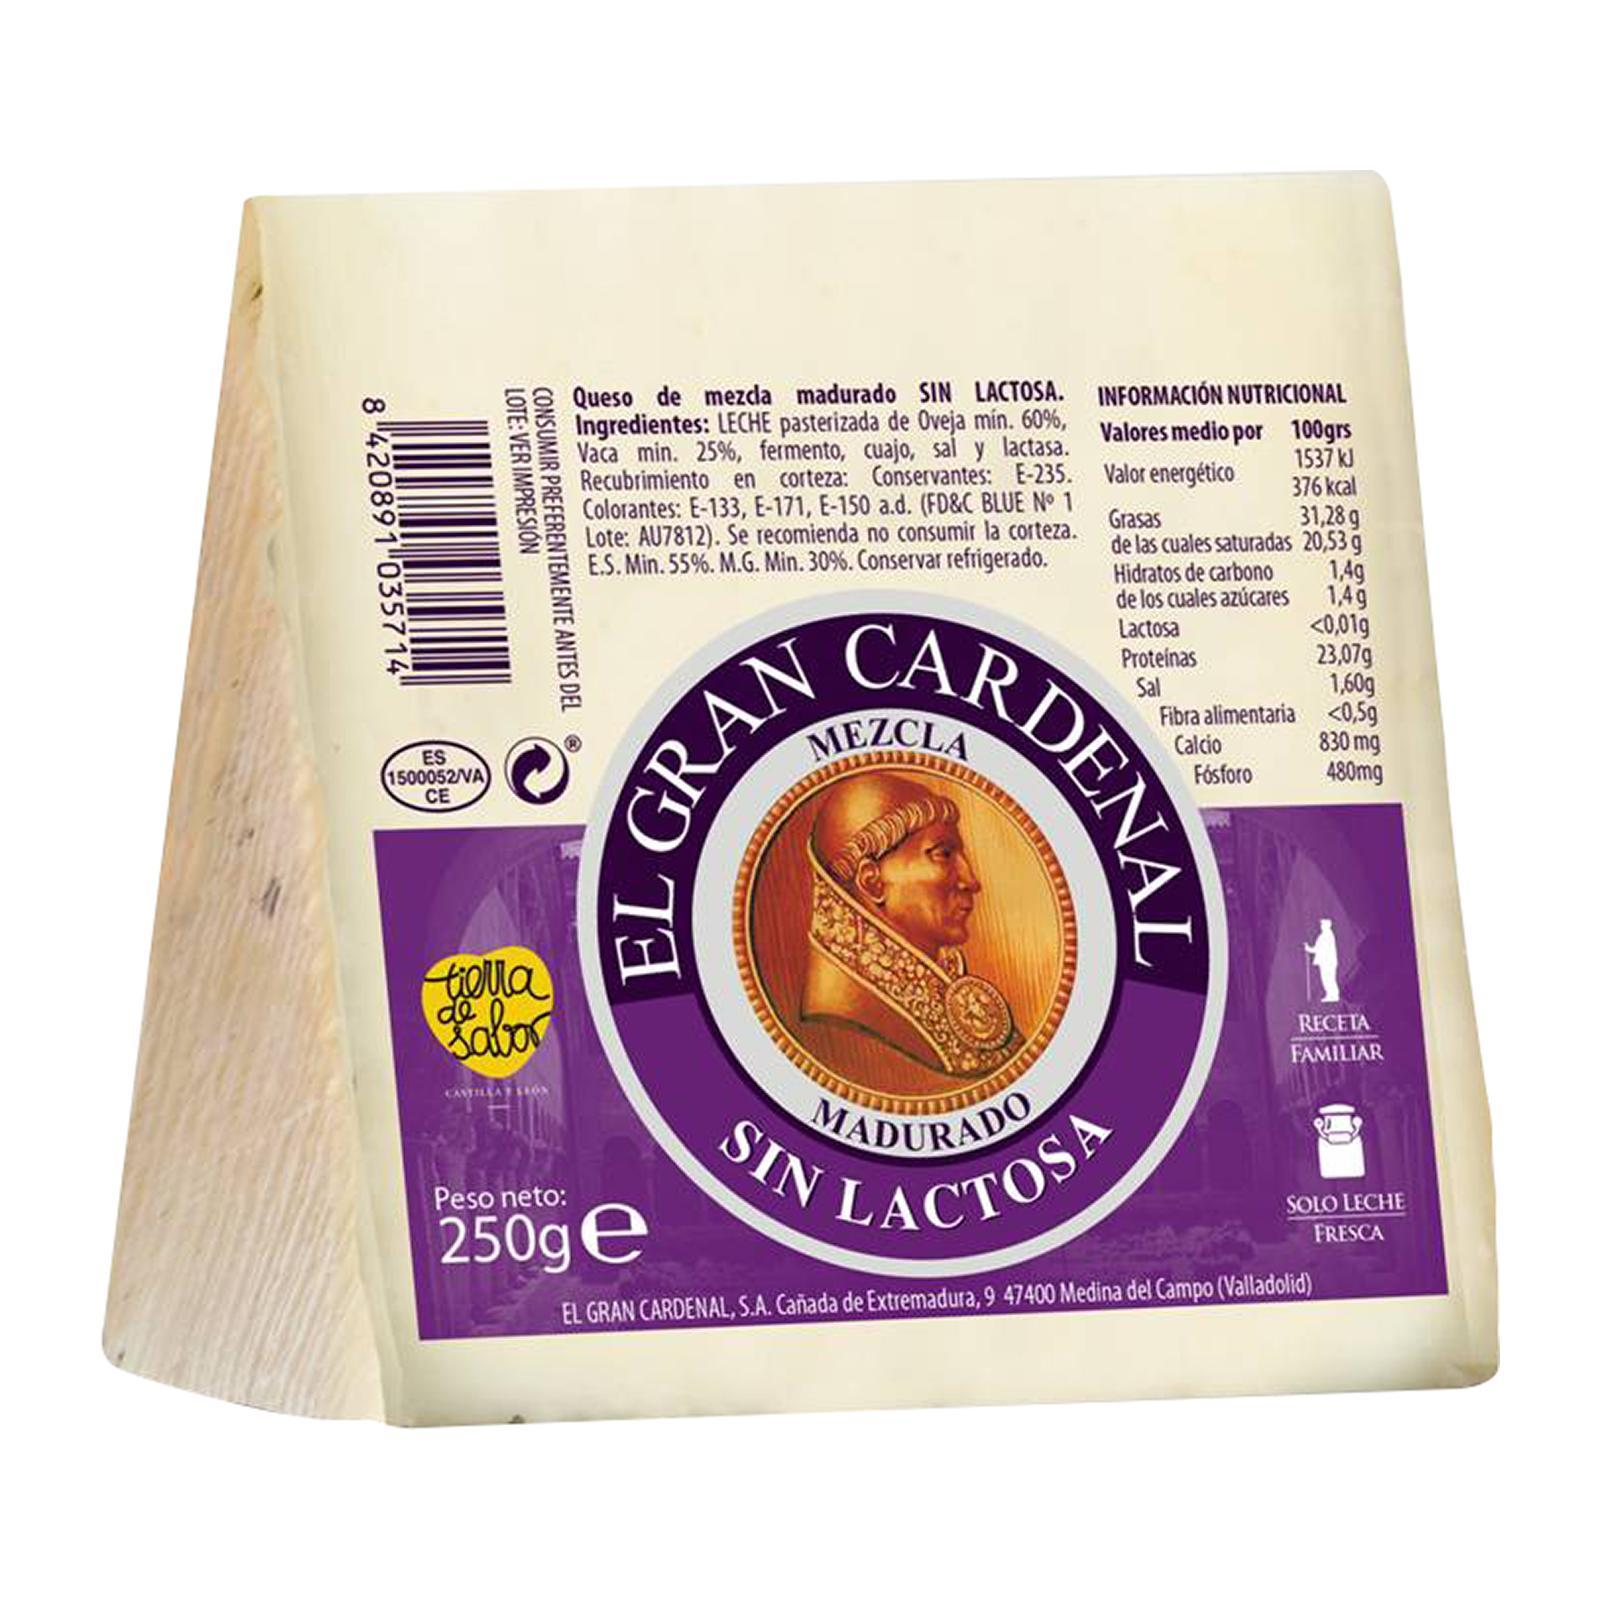 El Gran Cardenal Blended Milk Cheese without Lactose Spanish Cheese- By TANINOS